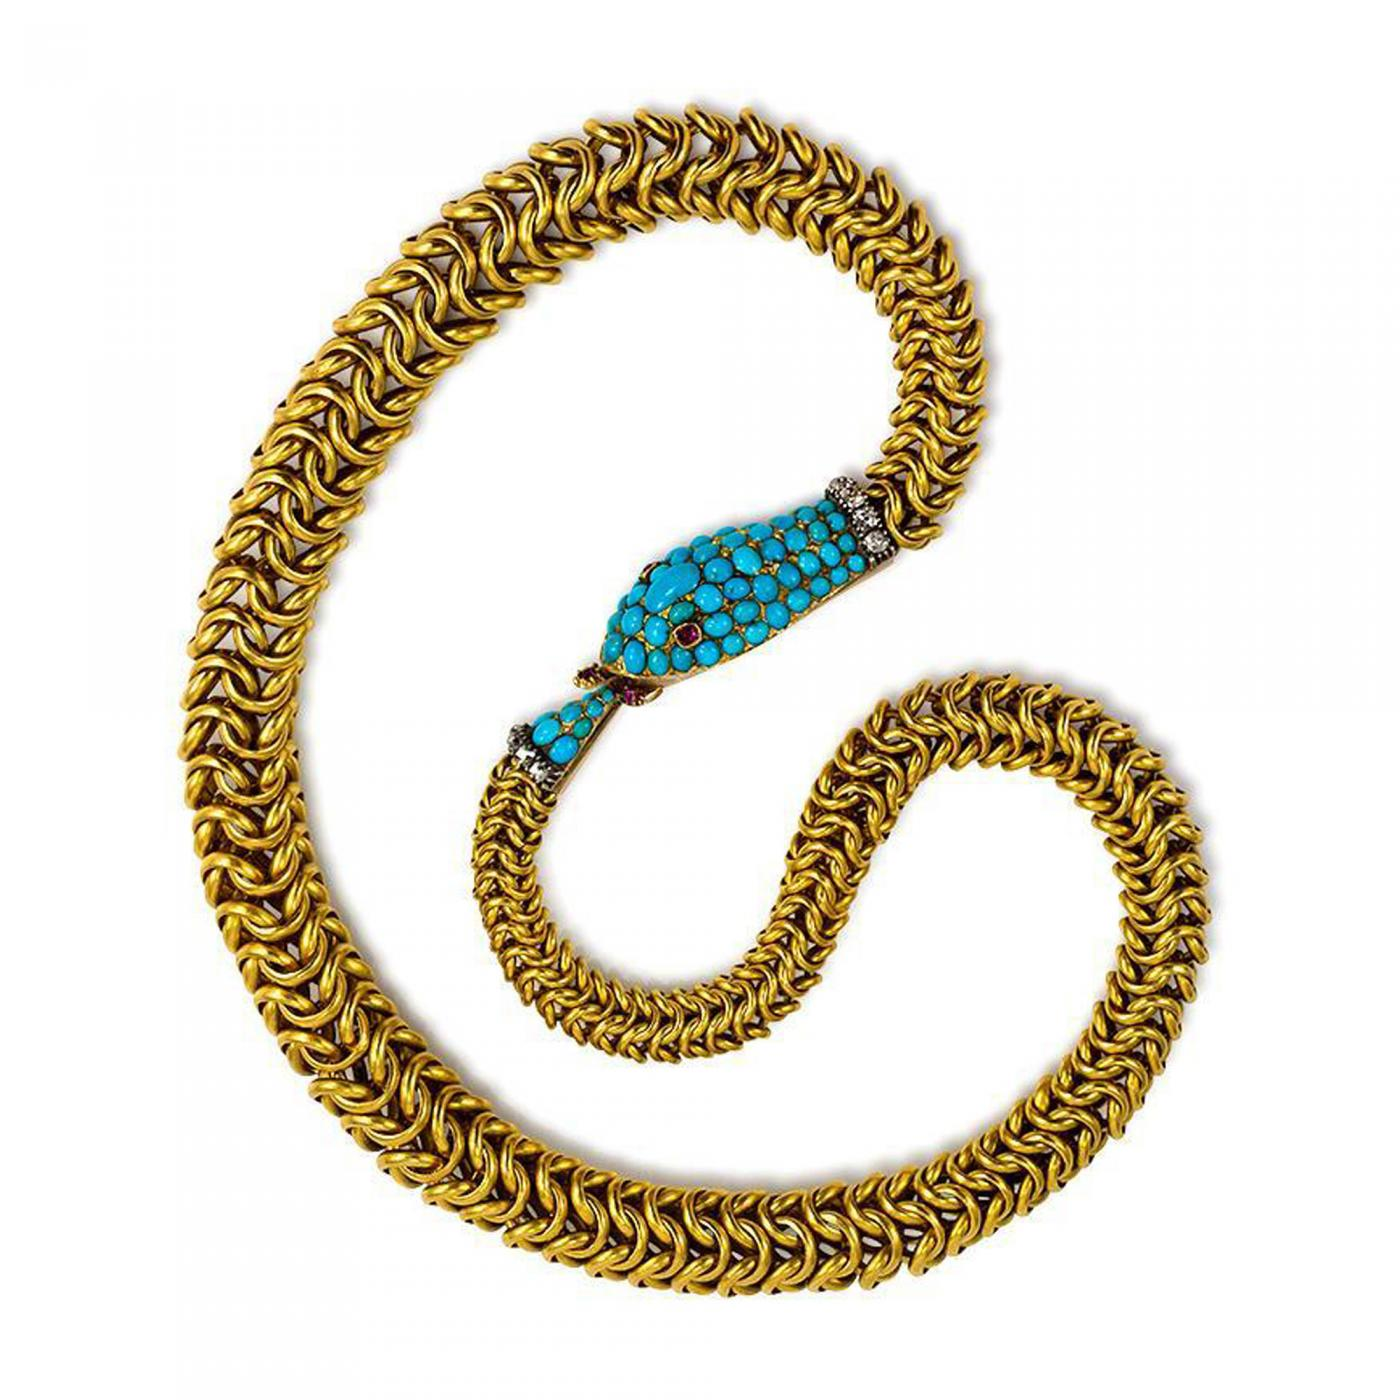 Antique gold and turquoise ouroboros snake necklace listings jewelry necklaces pendants link chain aloadofball Images